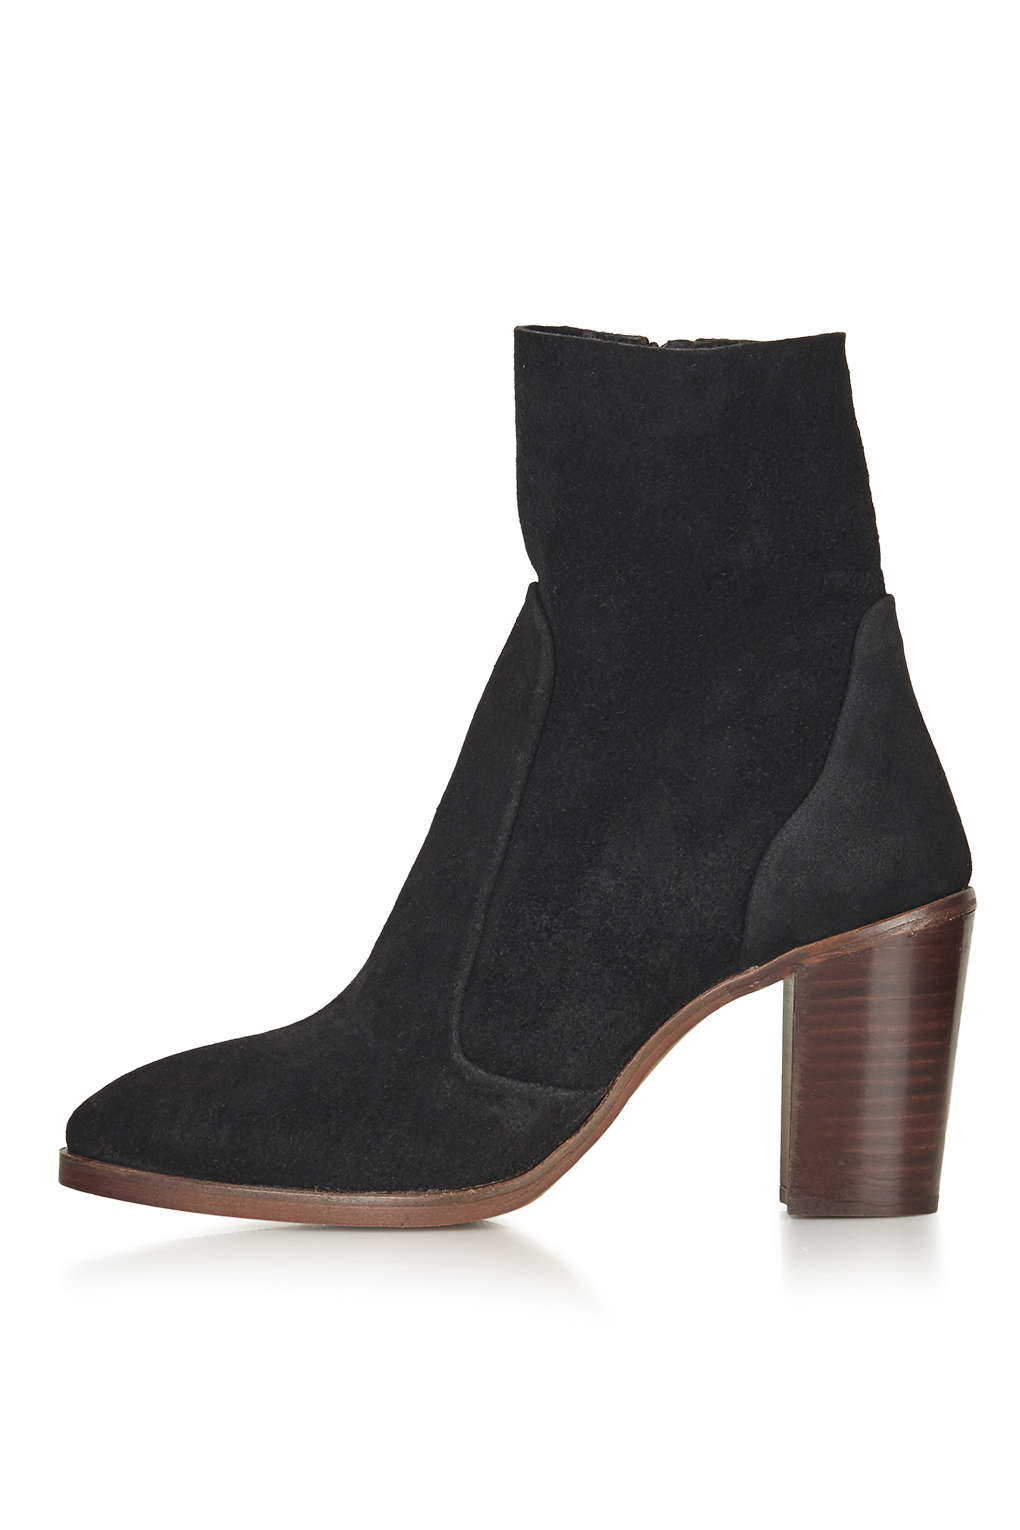 TOPSHOP Magnificent Suede Sock Boots in Black